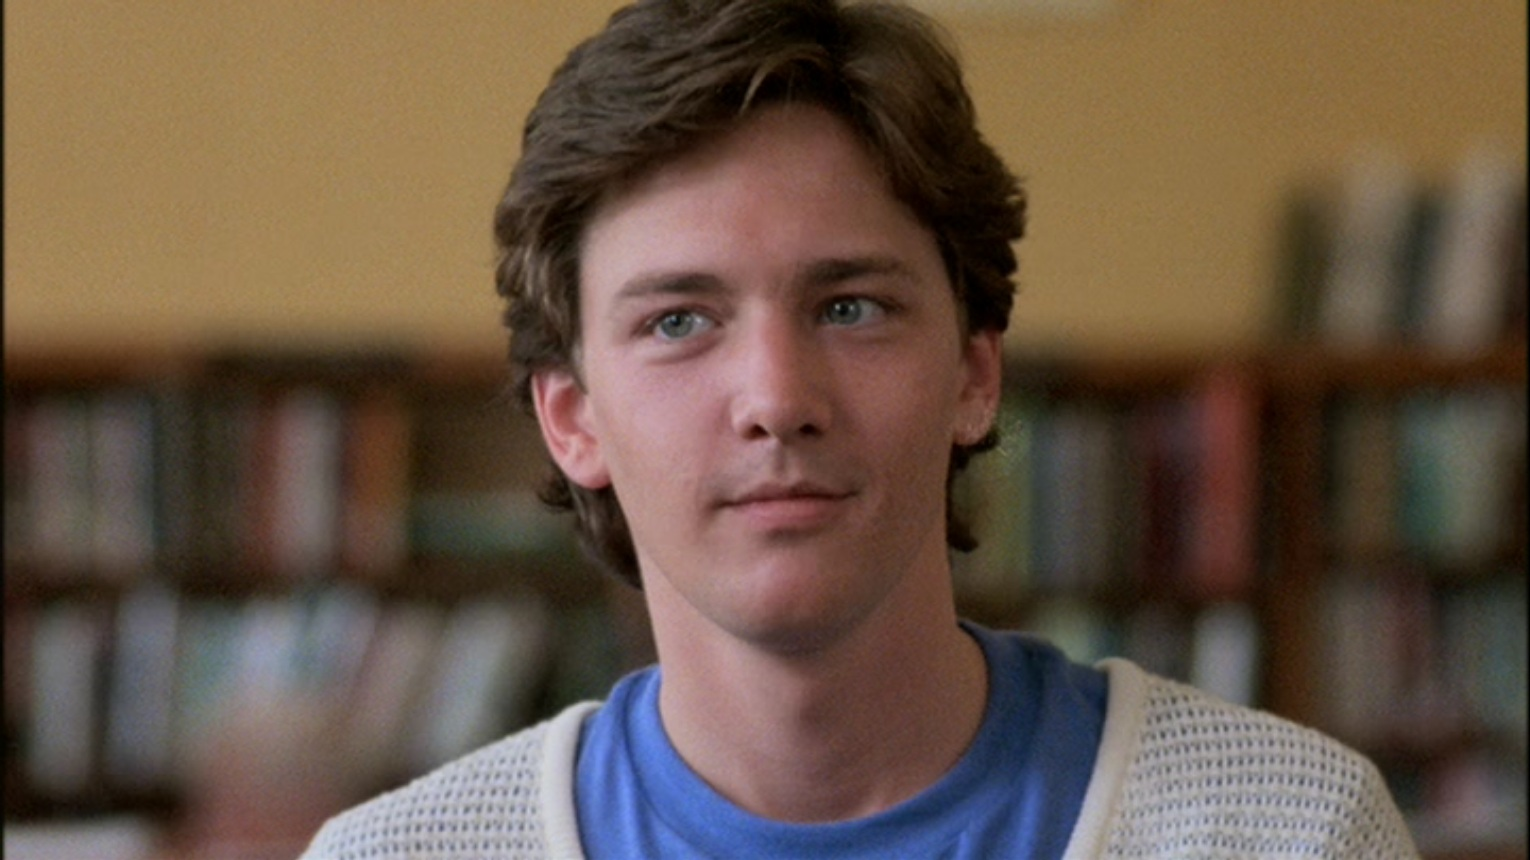 Andrew Mccarthy Pretty In Pink Pretty in pink Andrew Mccarthy Pretty In Pink Wig